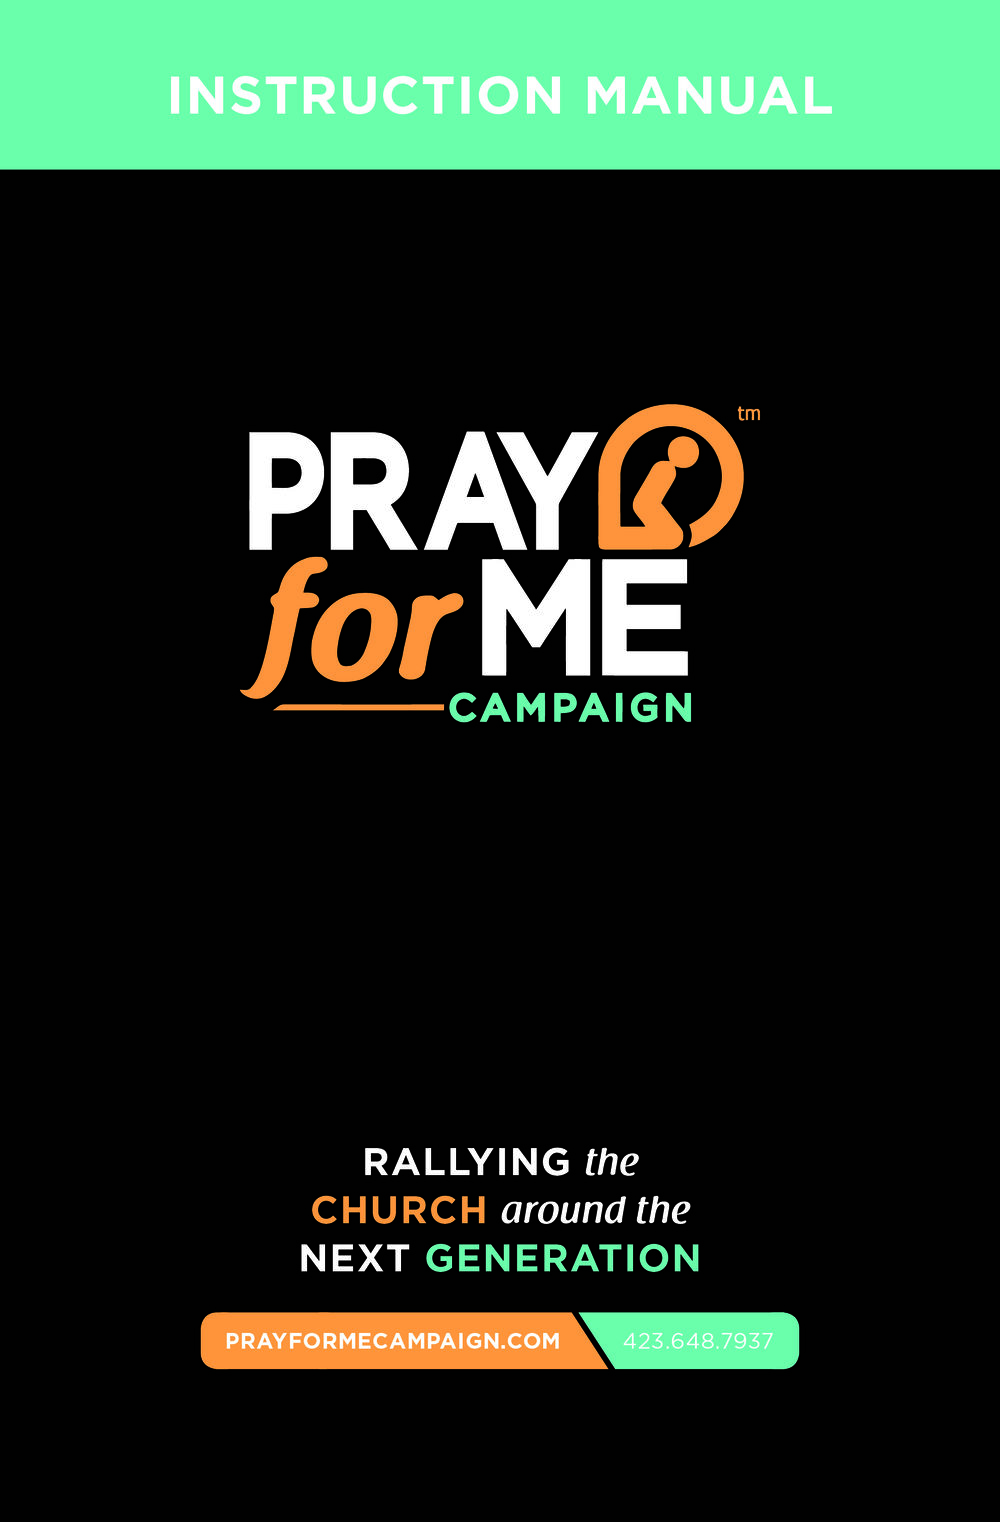 Pray for Me Campaign Instruction Manual